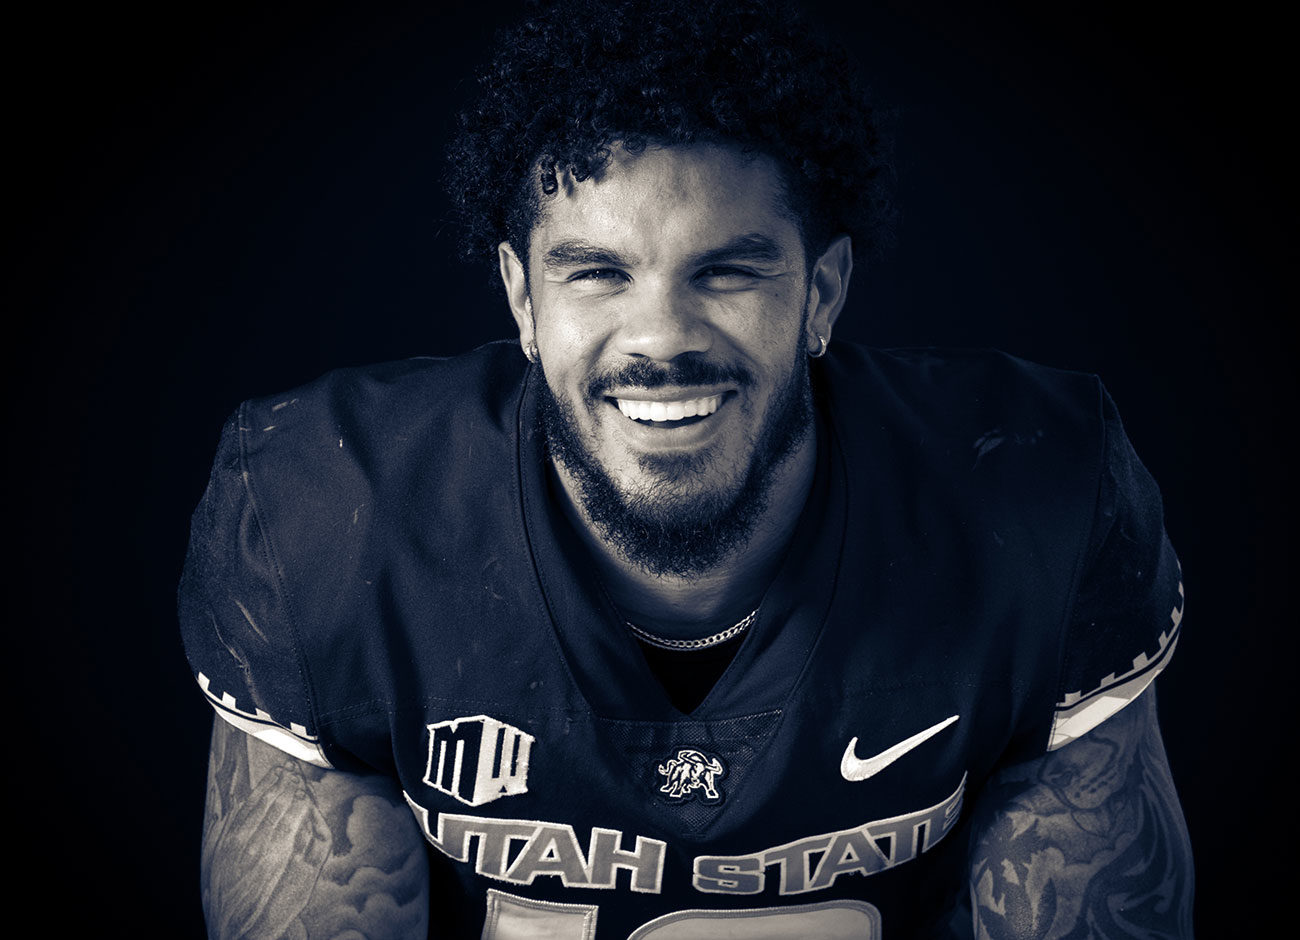 a smiling football player without his helmet